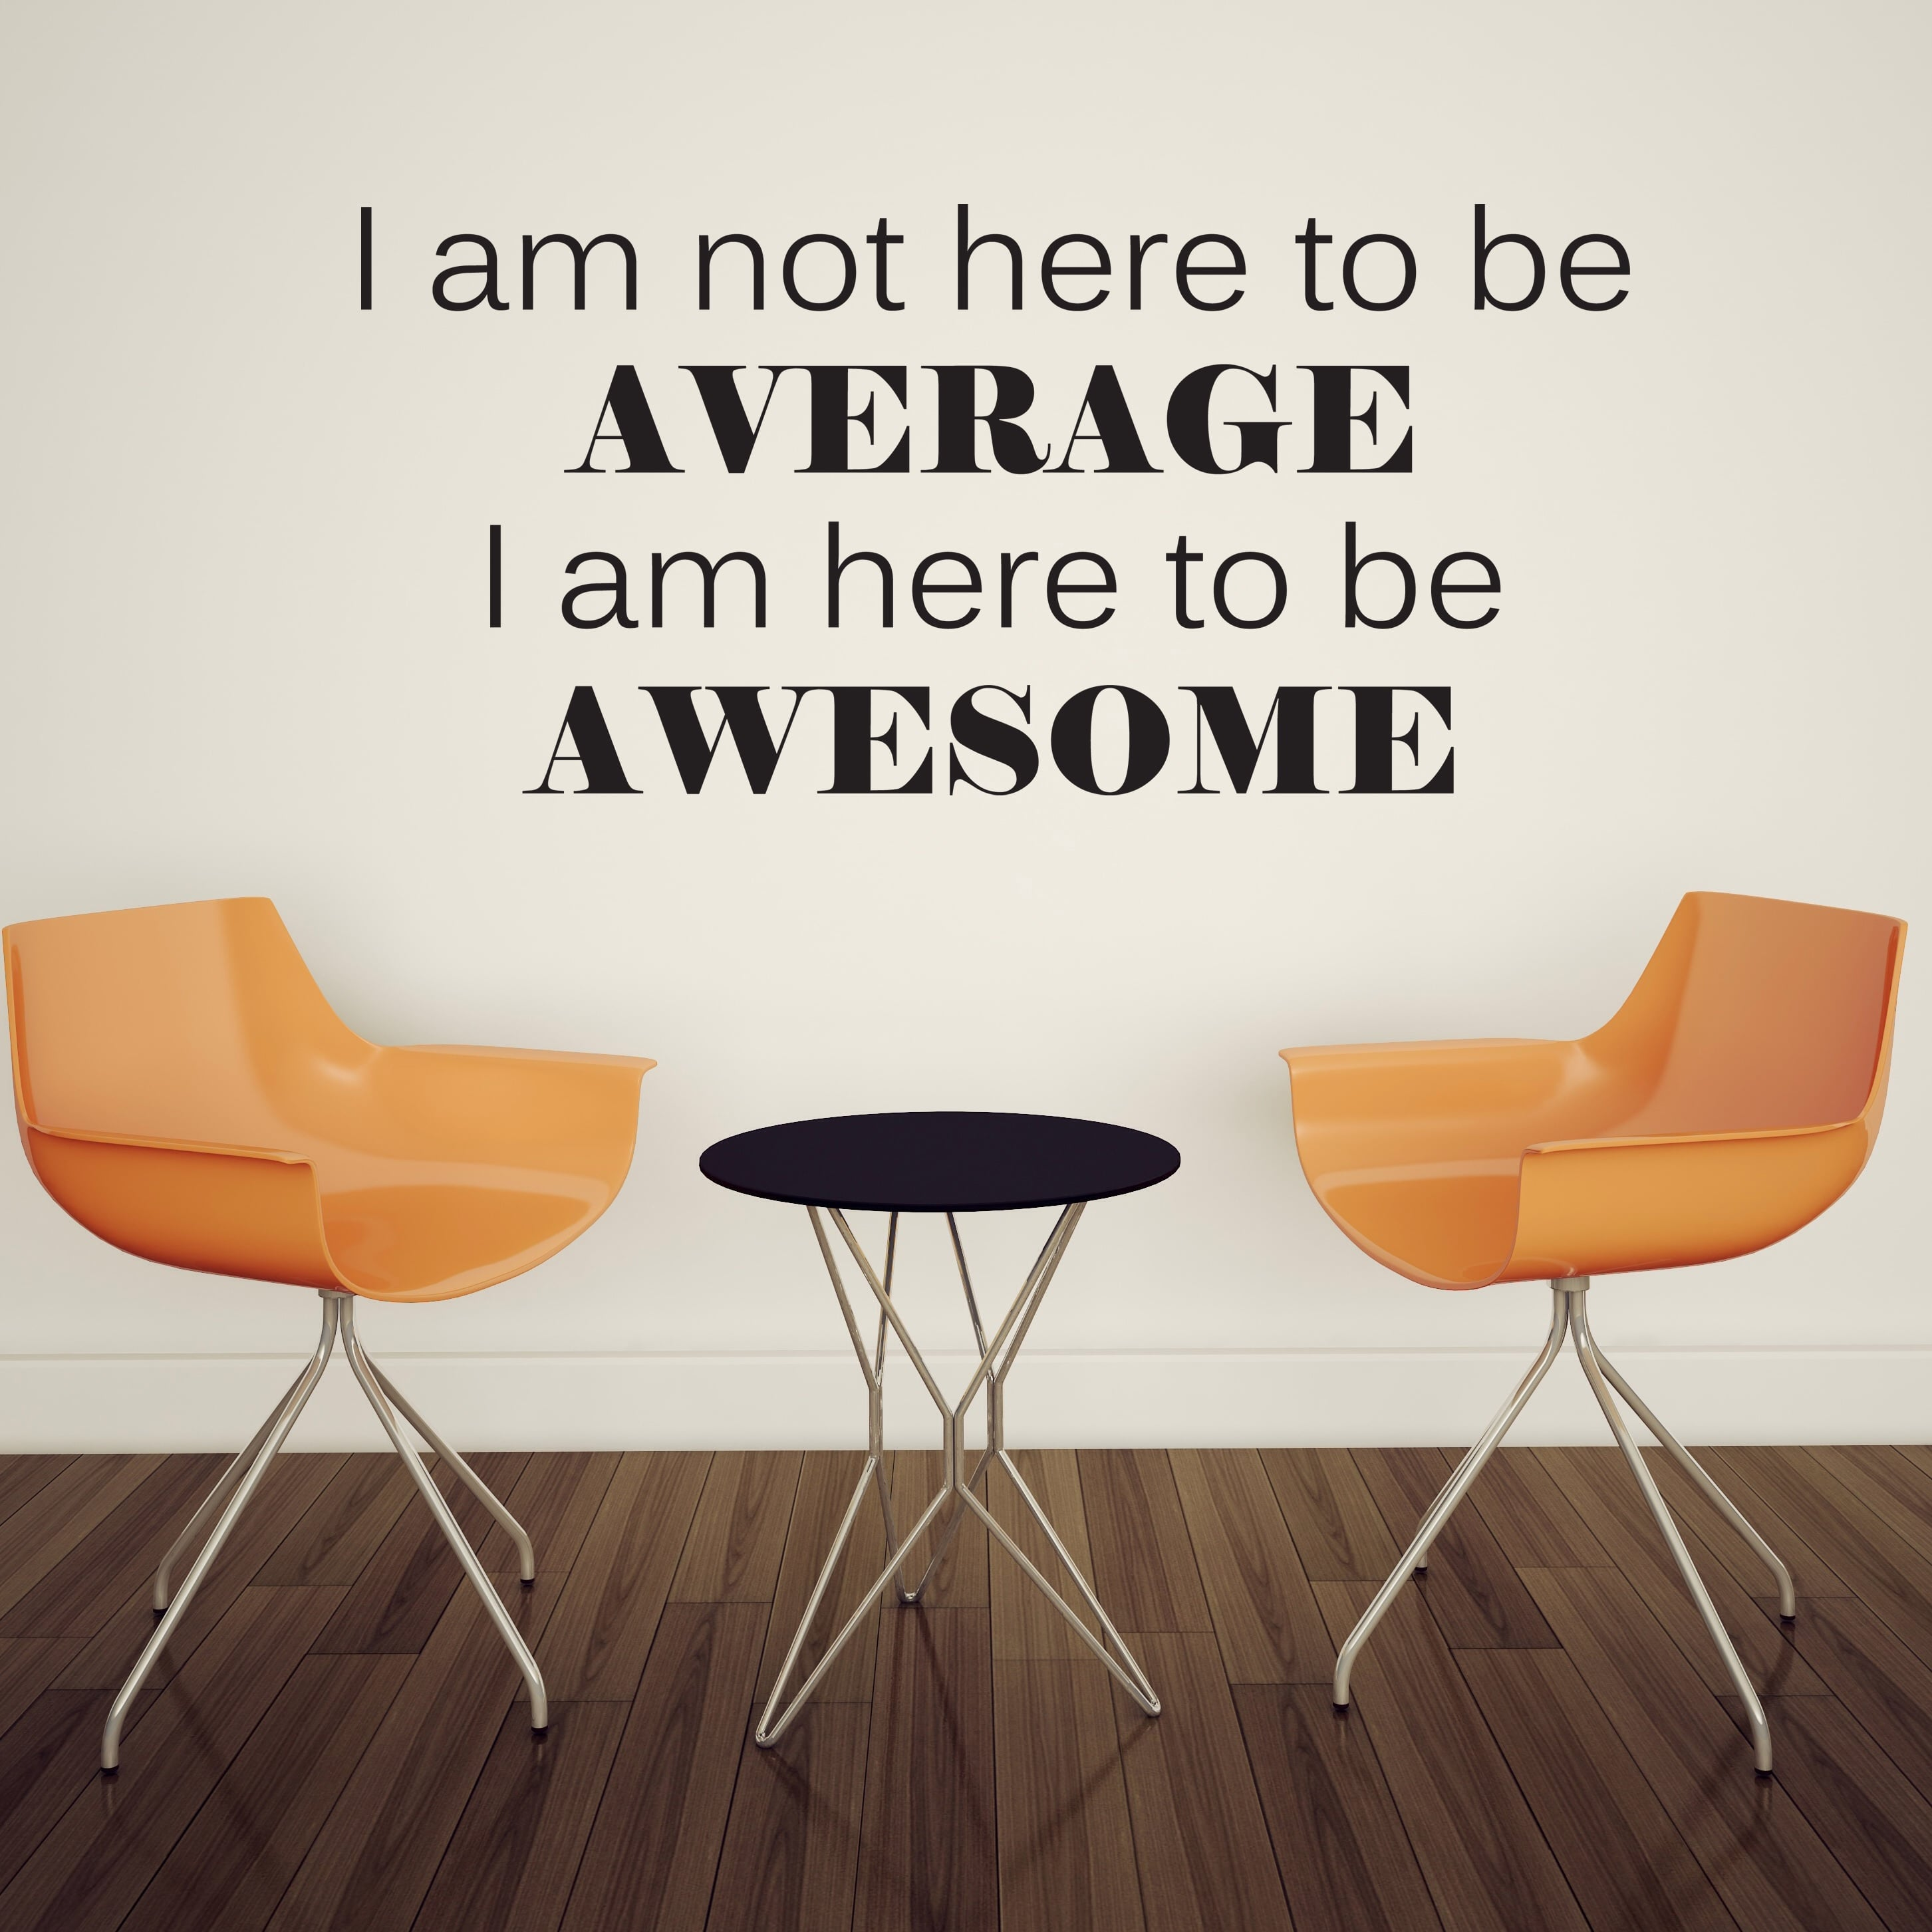 Wallsticker I am here to be Awesome